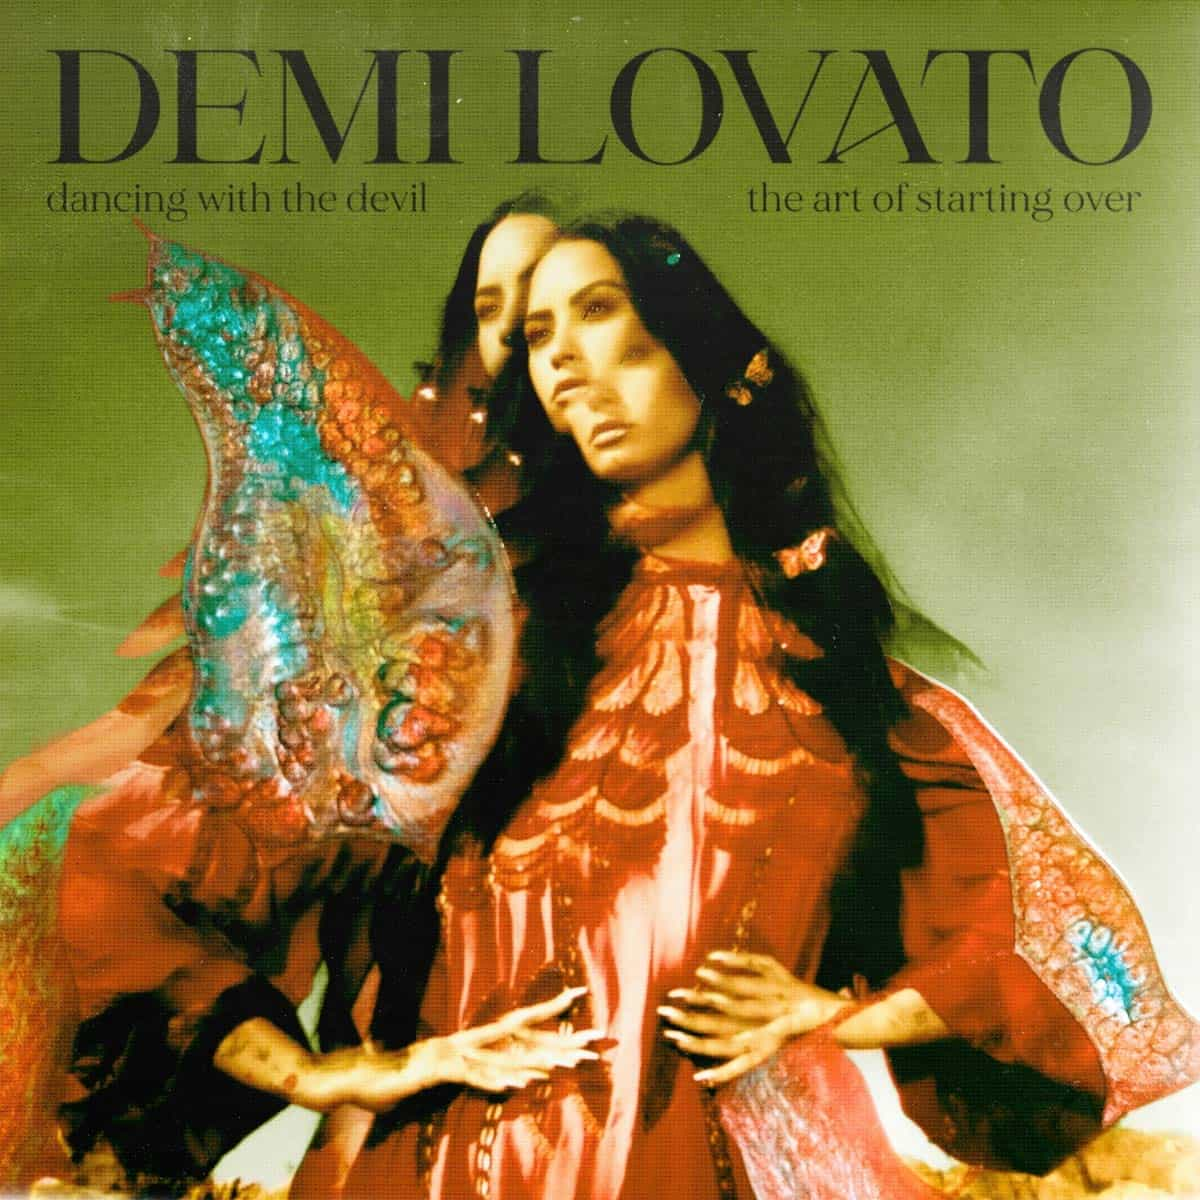 Demi Lovato - Neues Album Dancing with the Devil...The Art of Starting Over